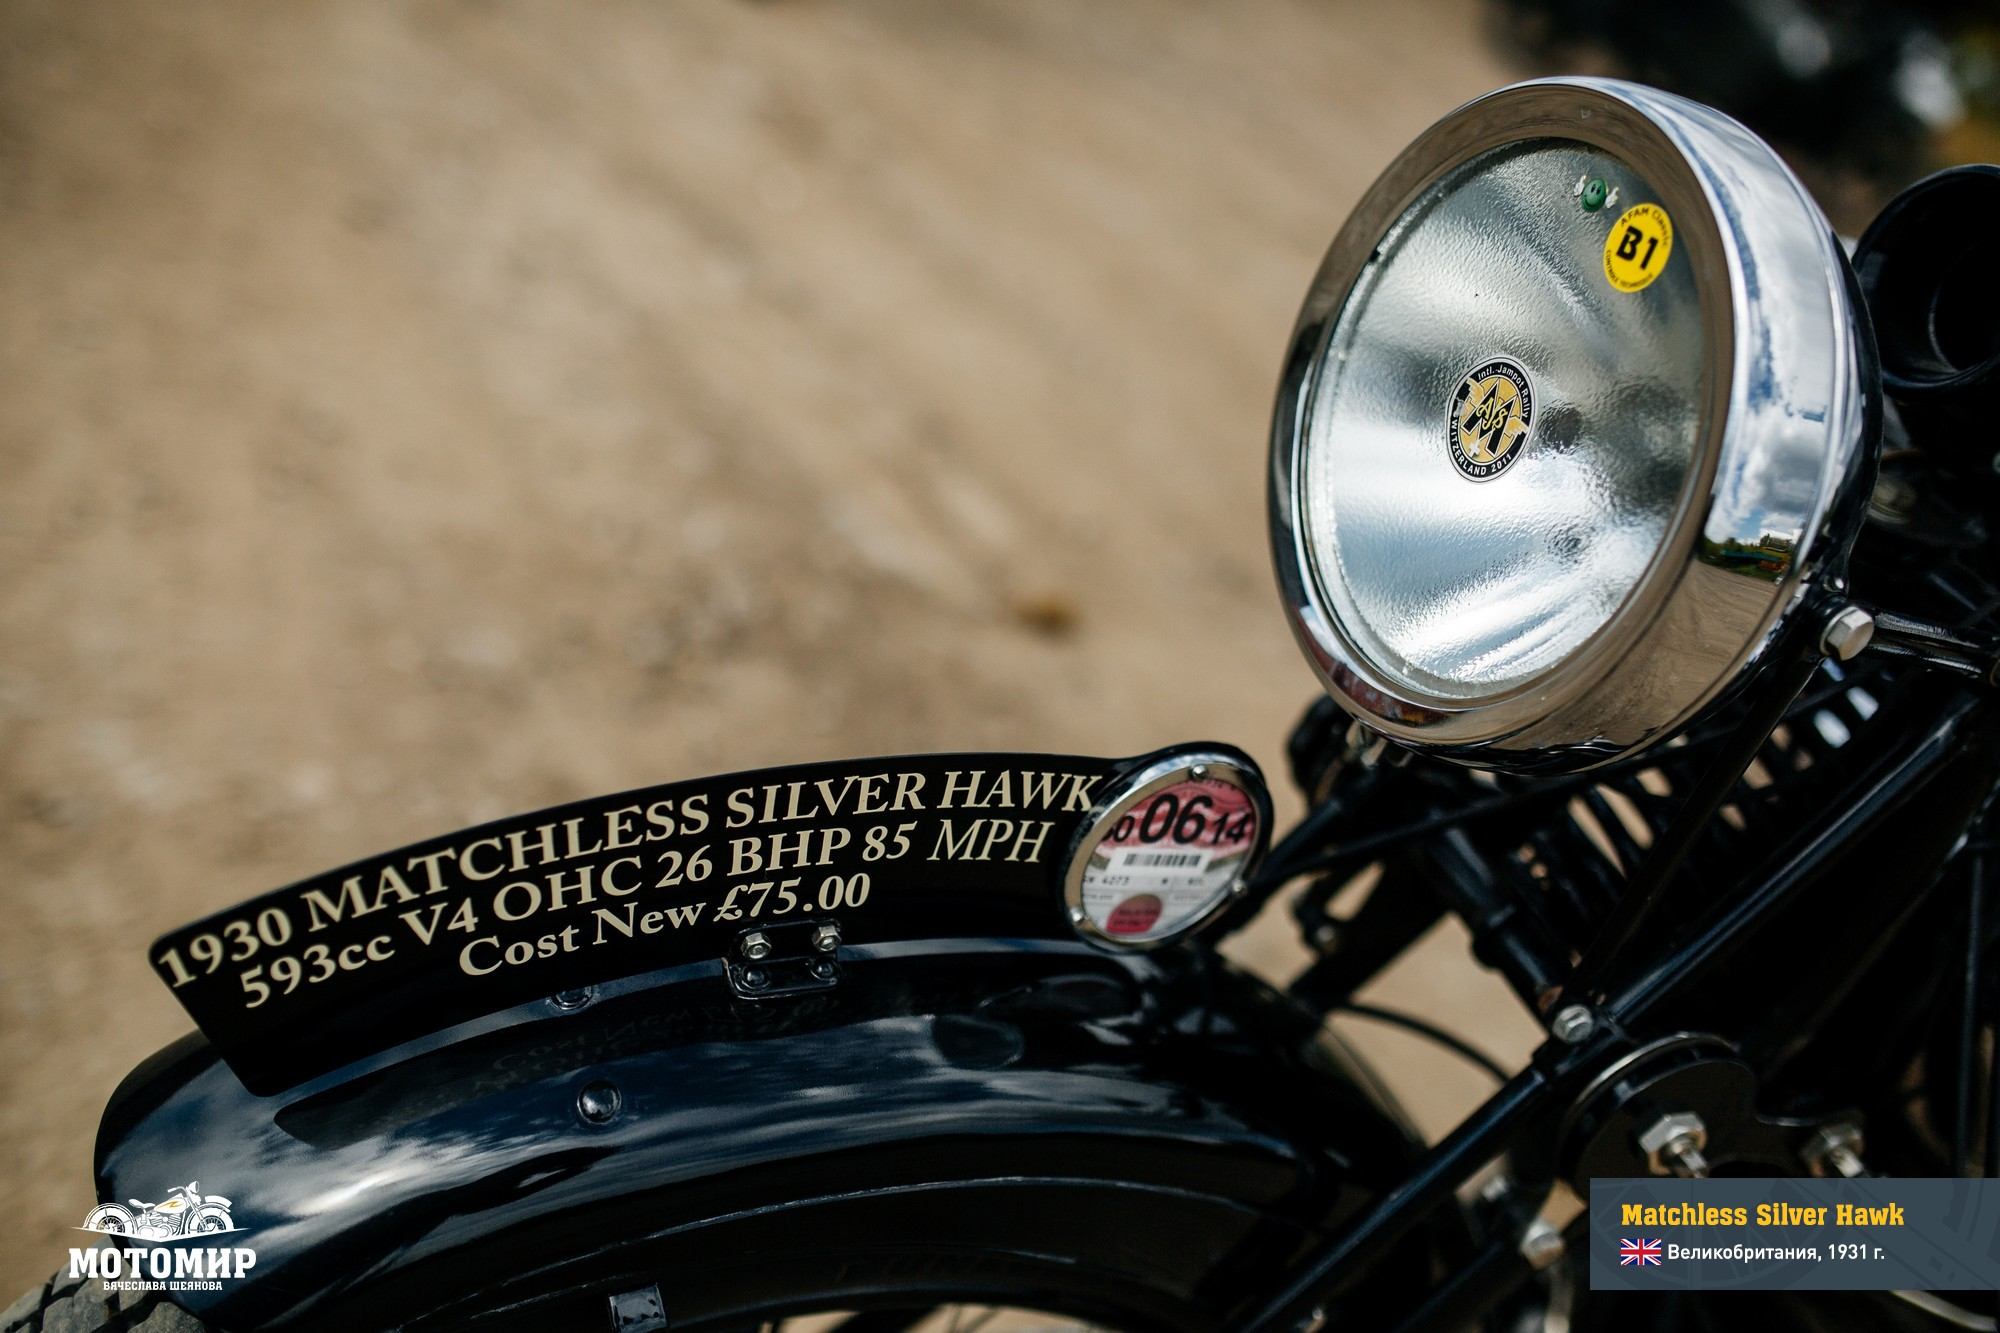 matchless-silver-hawk-201510-web-27